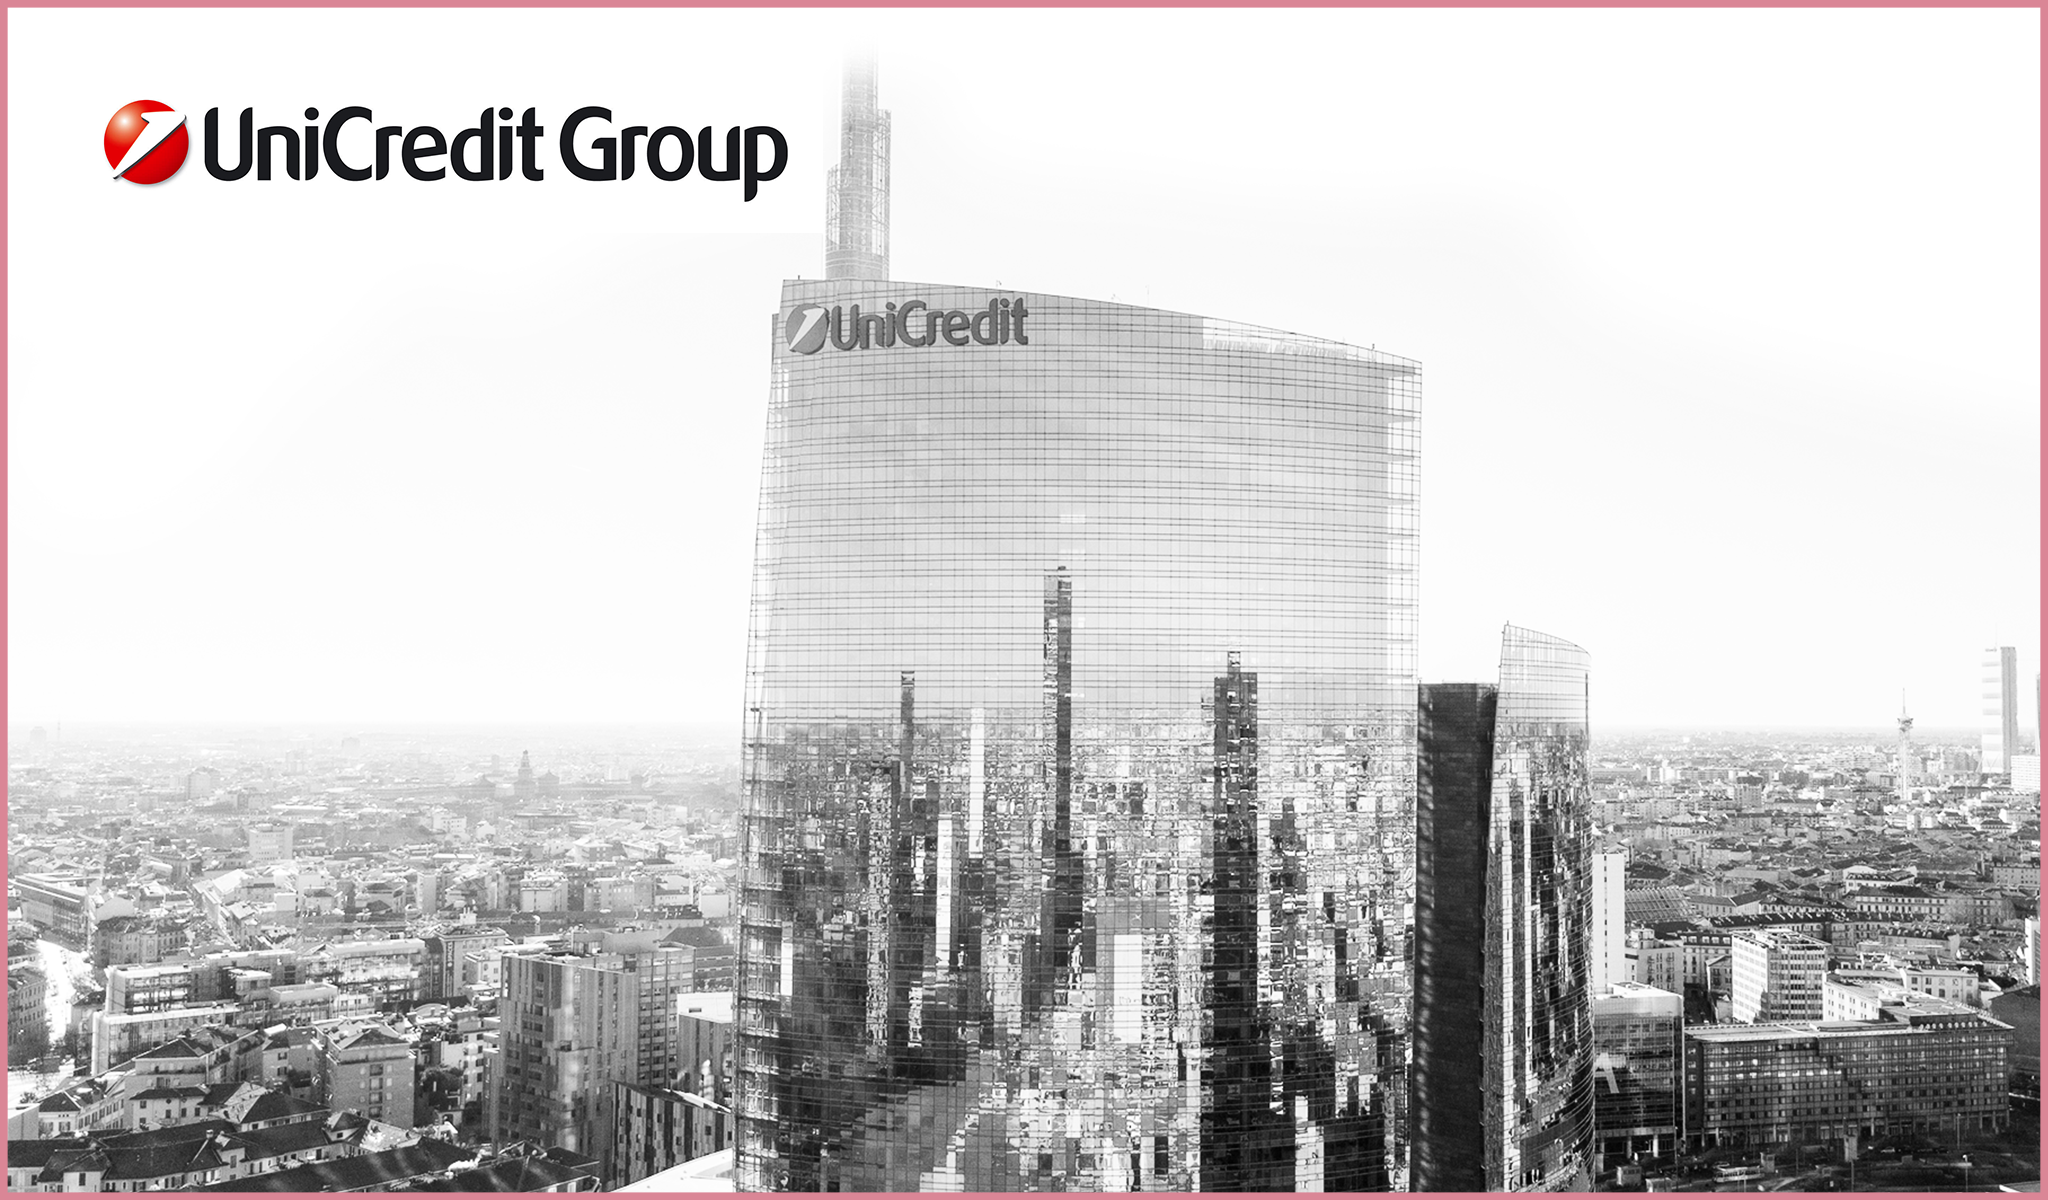 UNICREDIT SOUND BRANDING